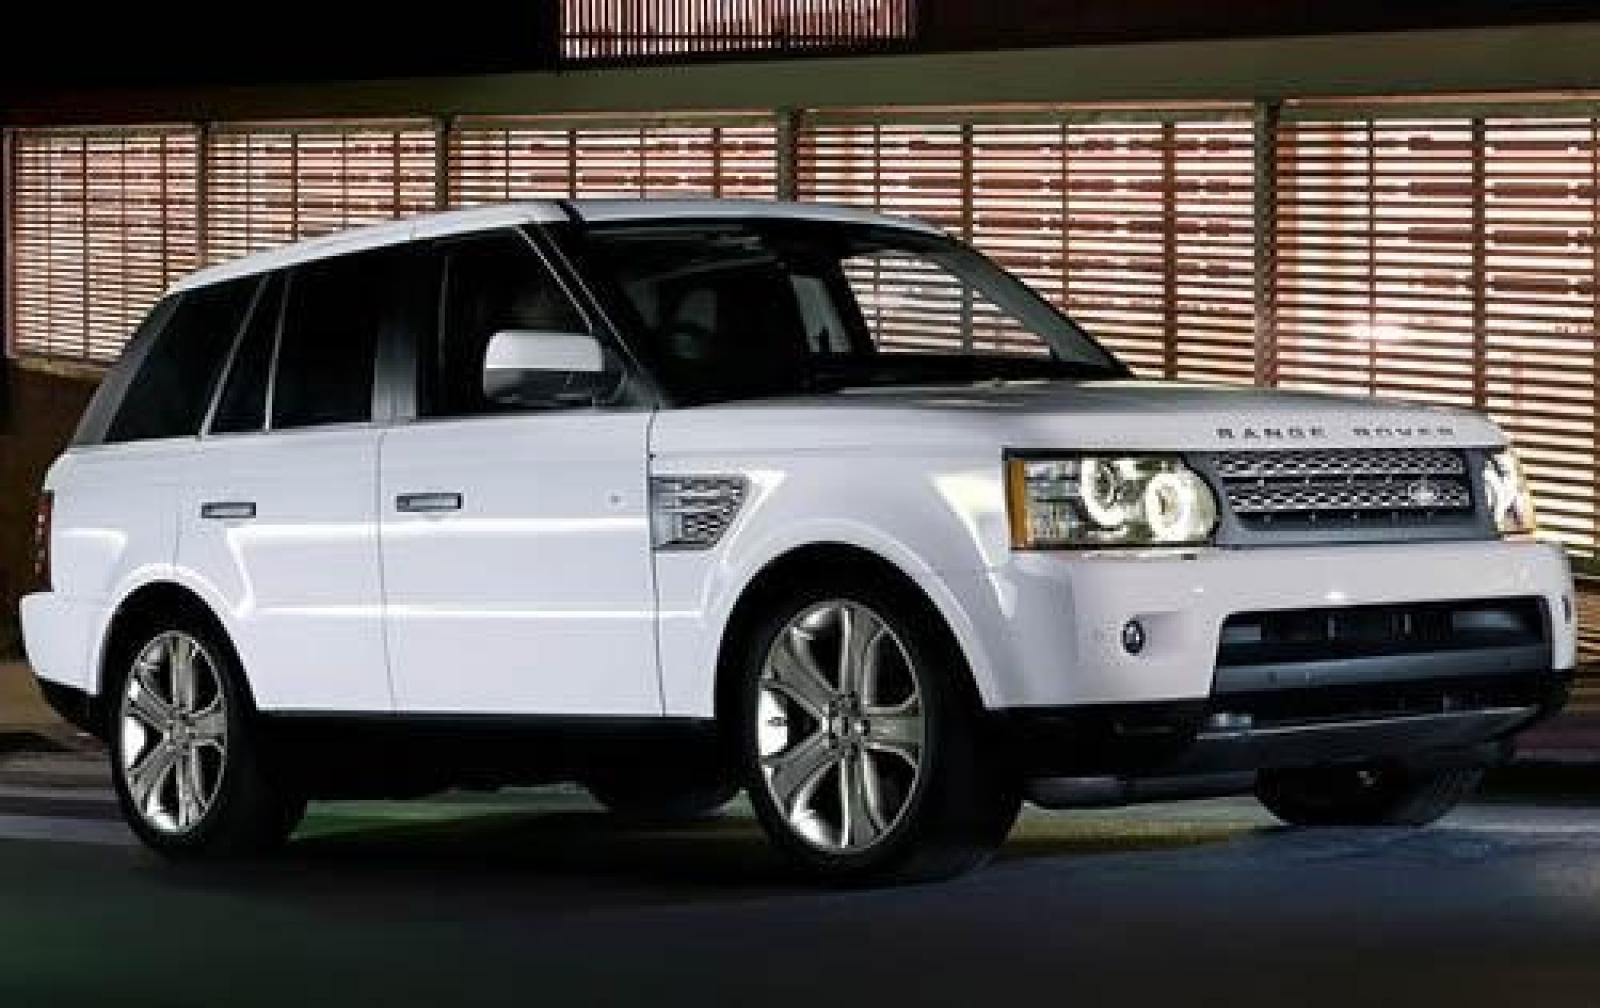 2011 land rover range rover sport information and photos zombiedrive. Black Bedroom Furniture Sets. Home Design Ideas